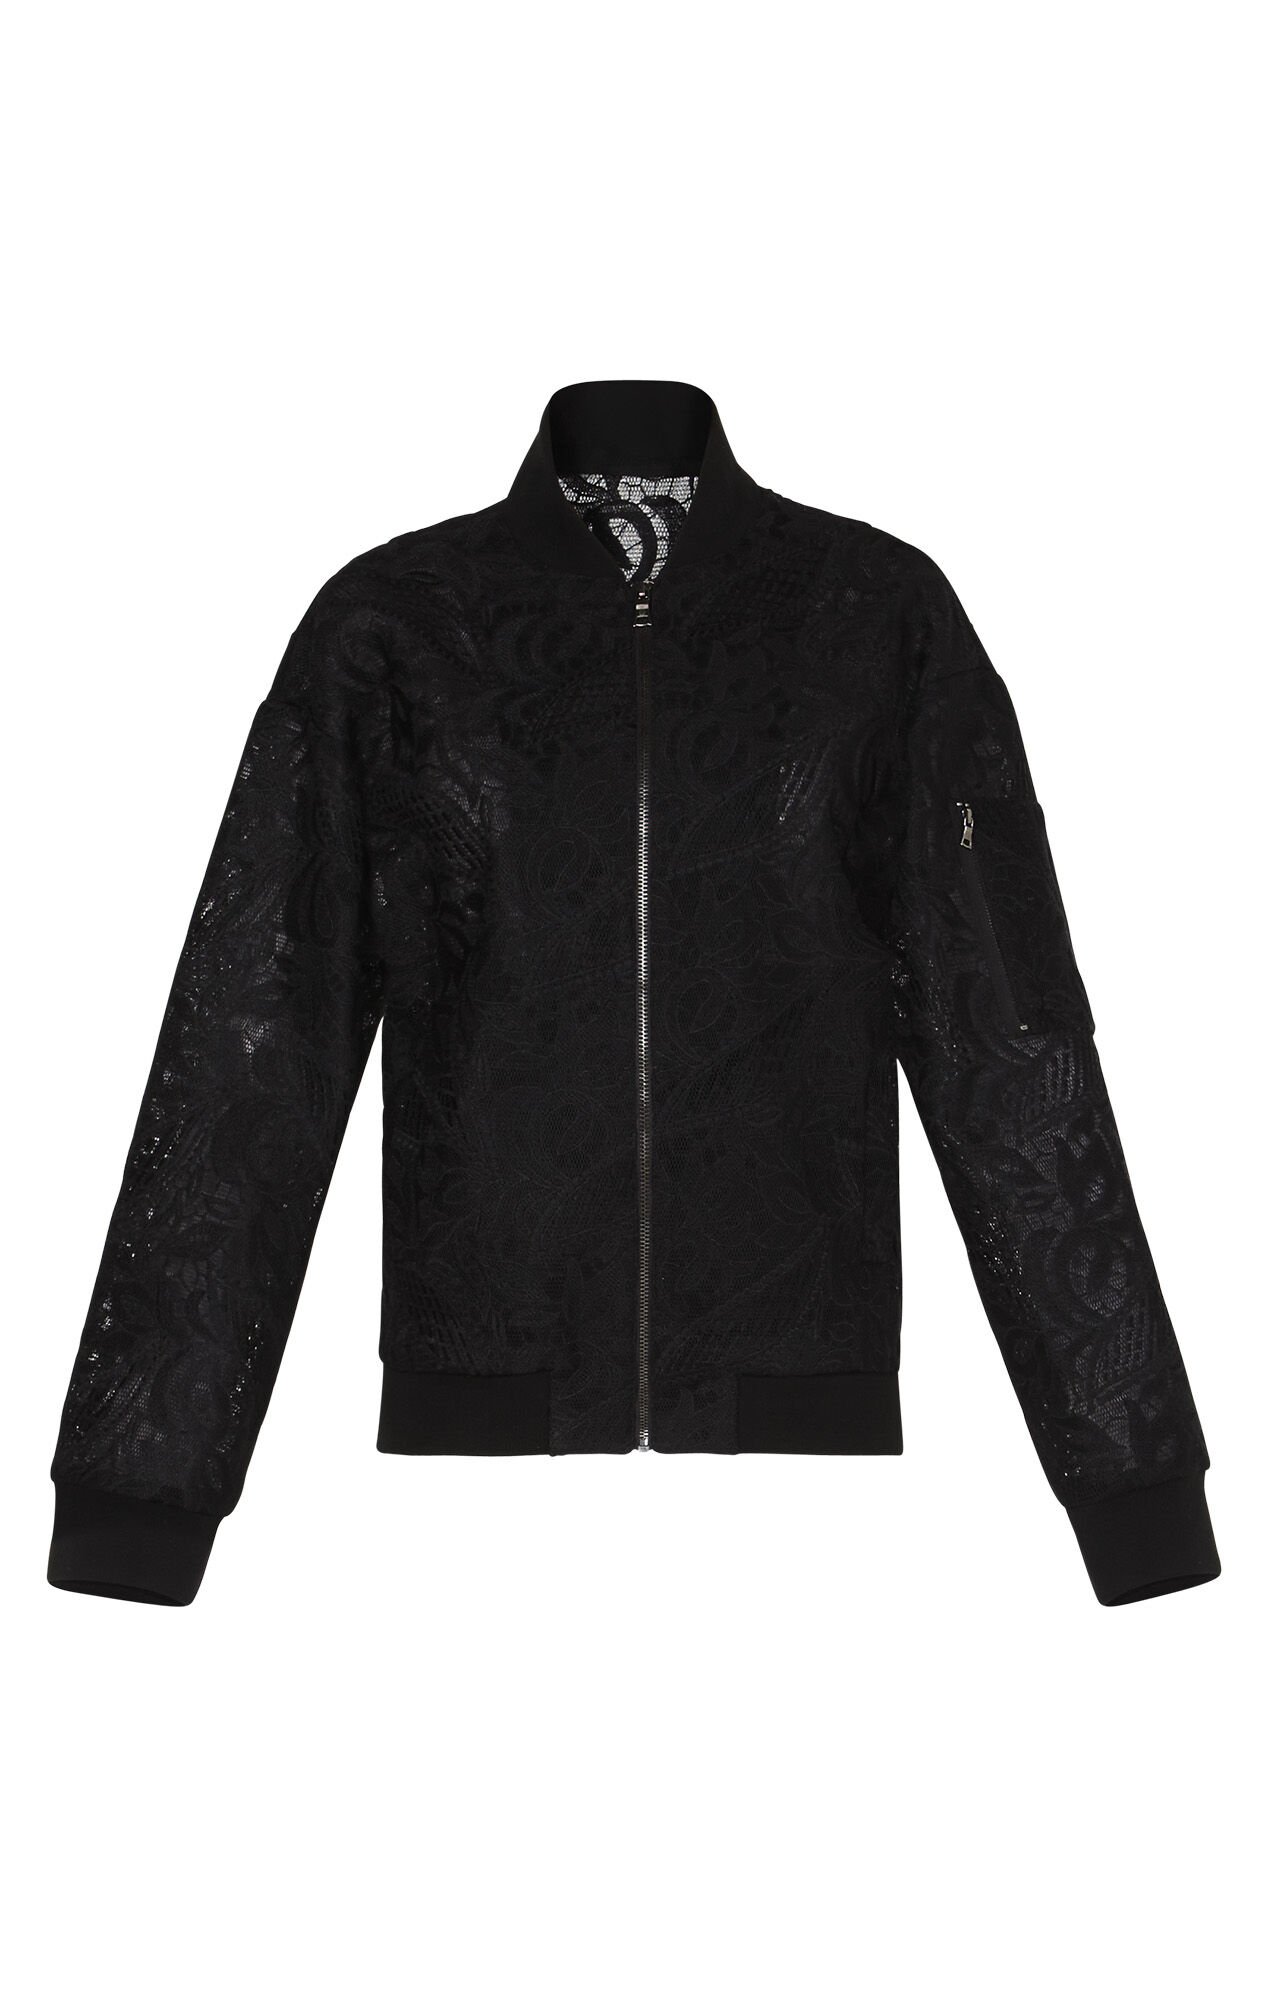 Brice Floral Lace Bomber Jacket